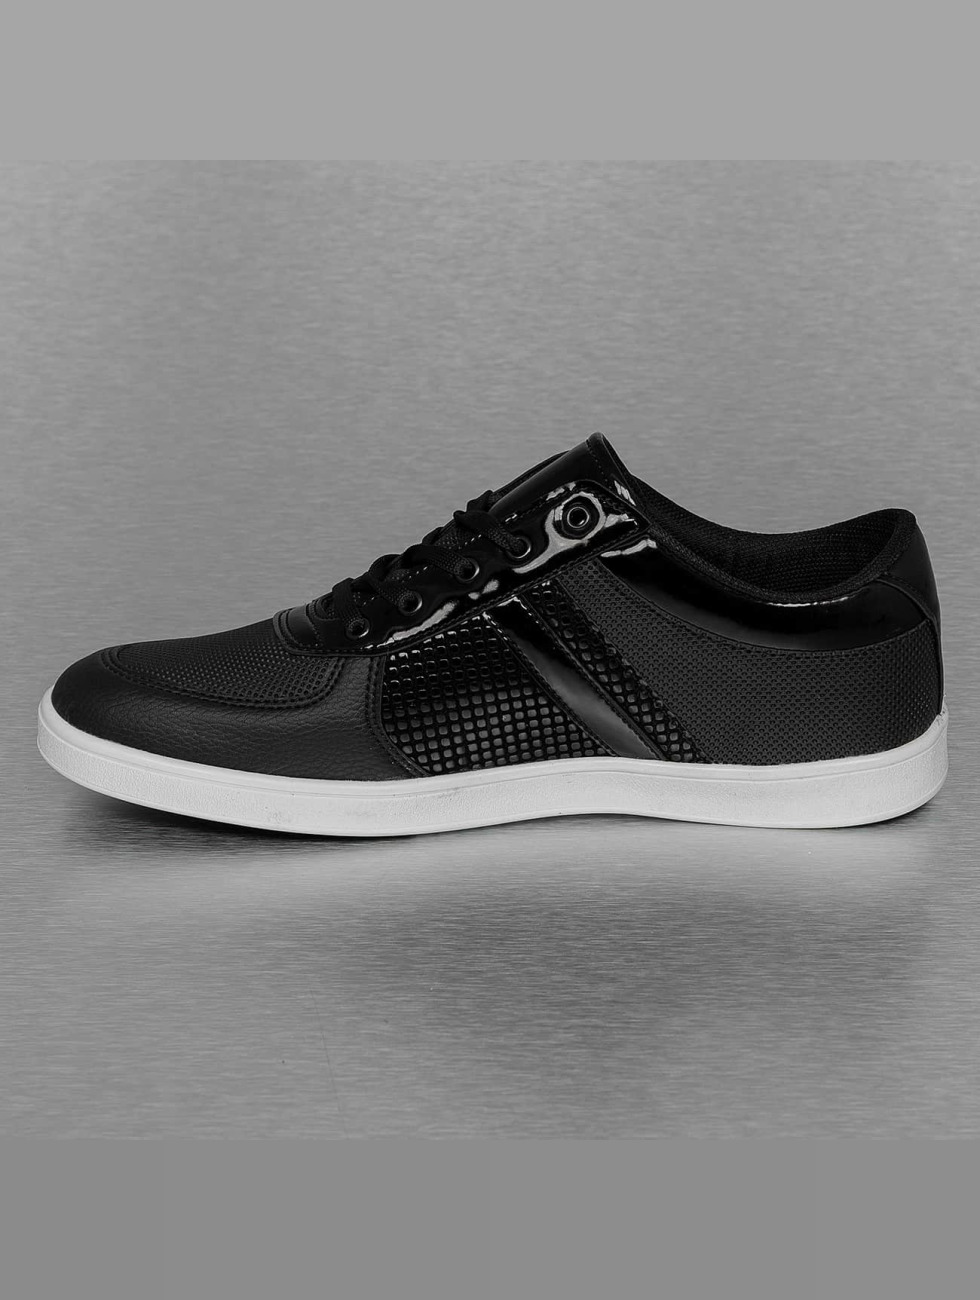 New York Style Sneaker Perforated Pattern schwarz